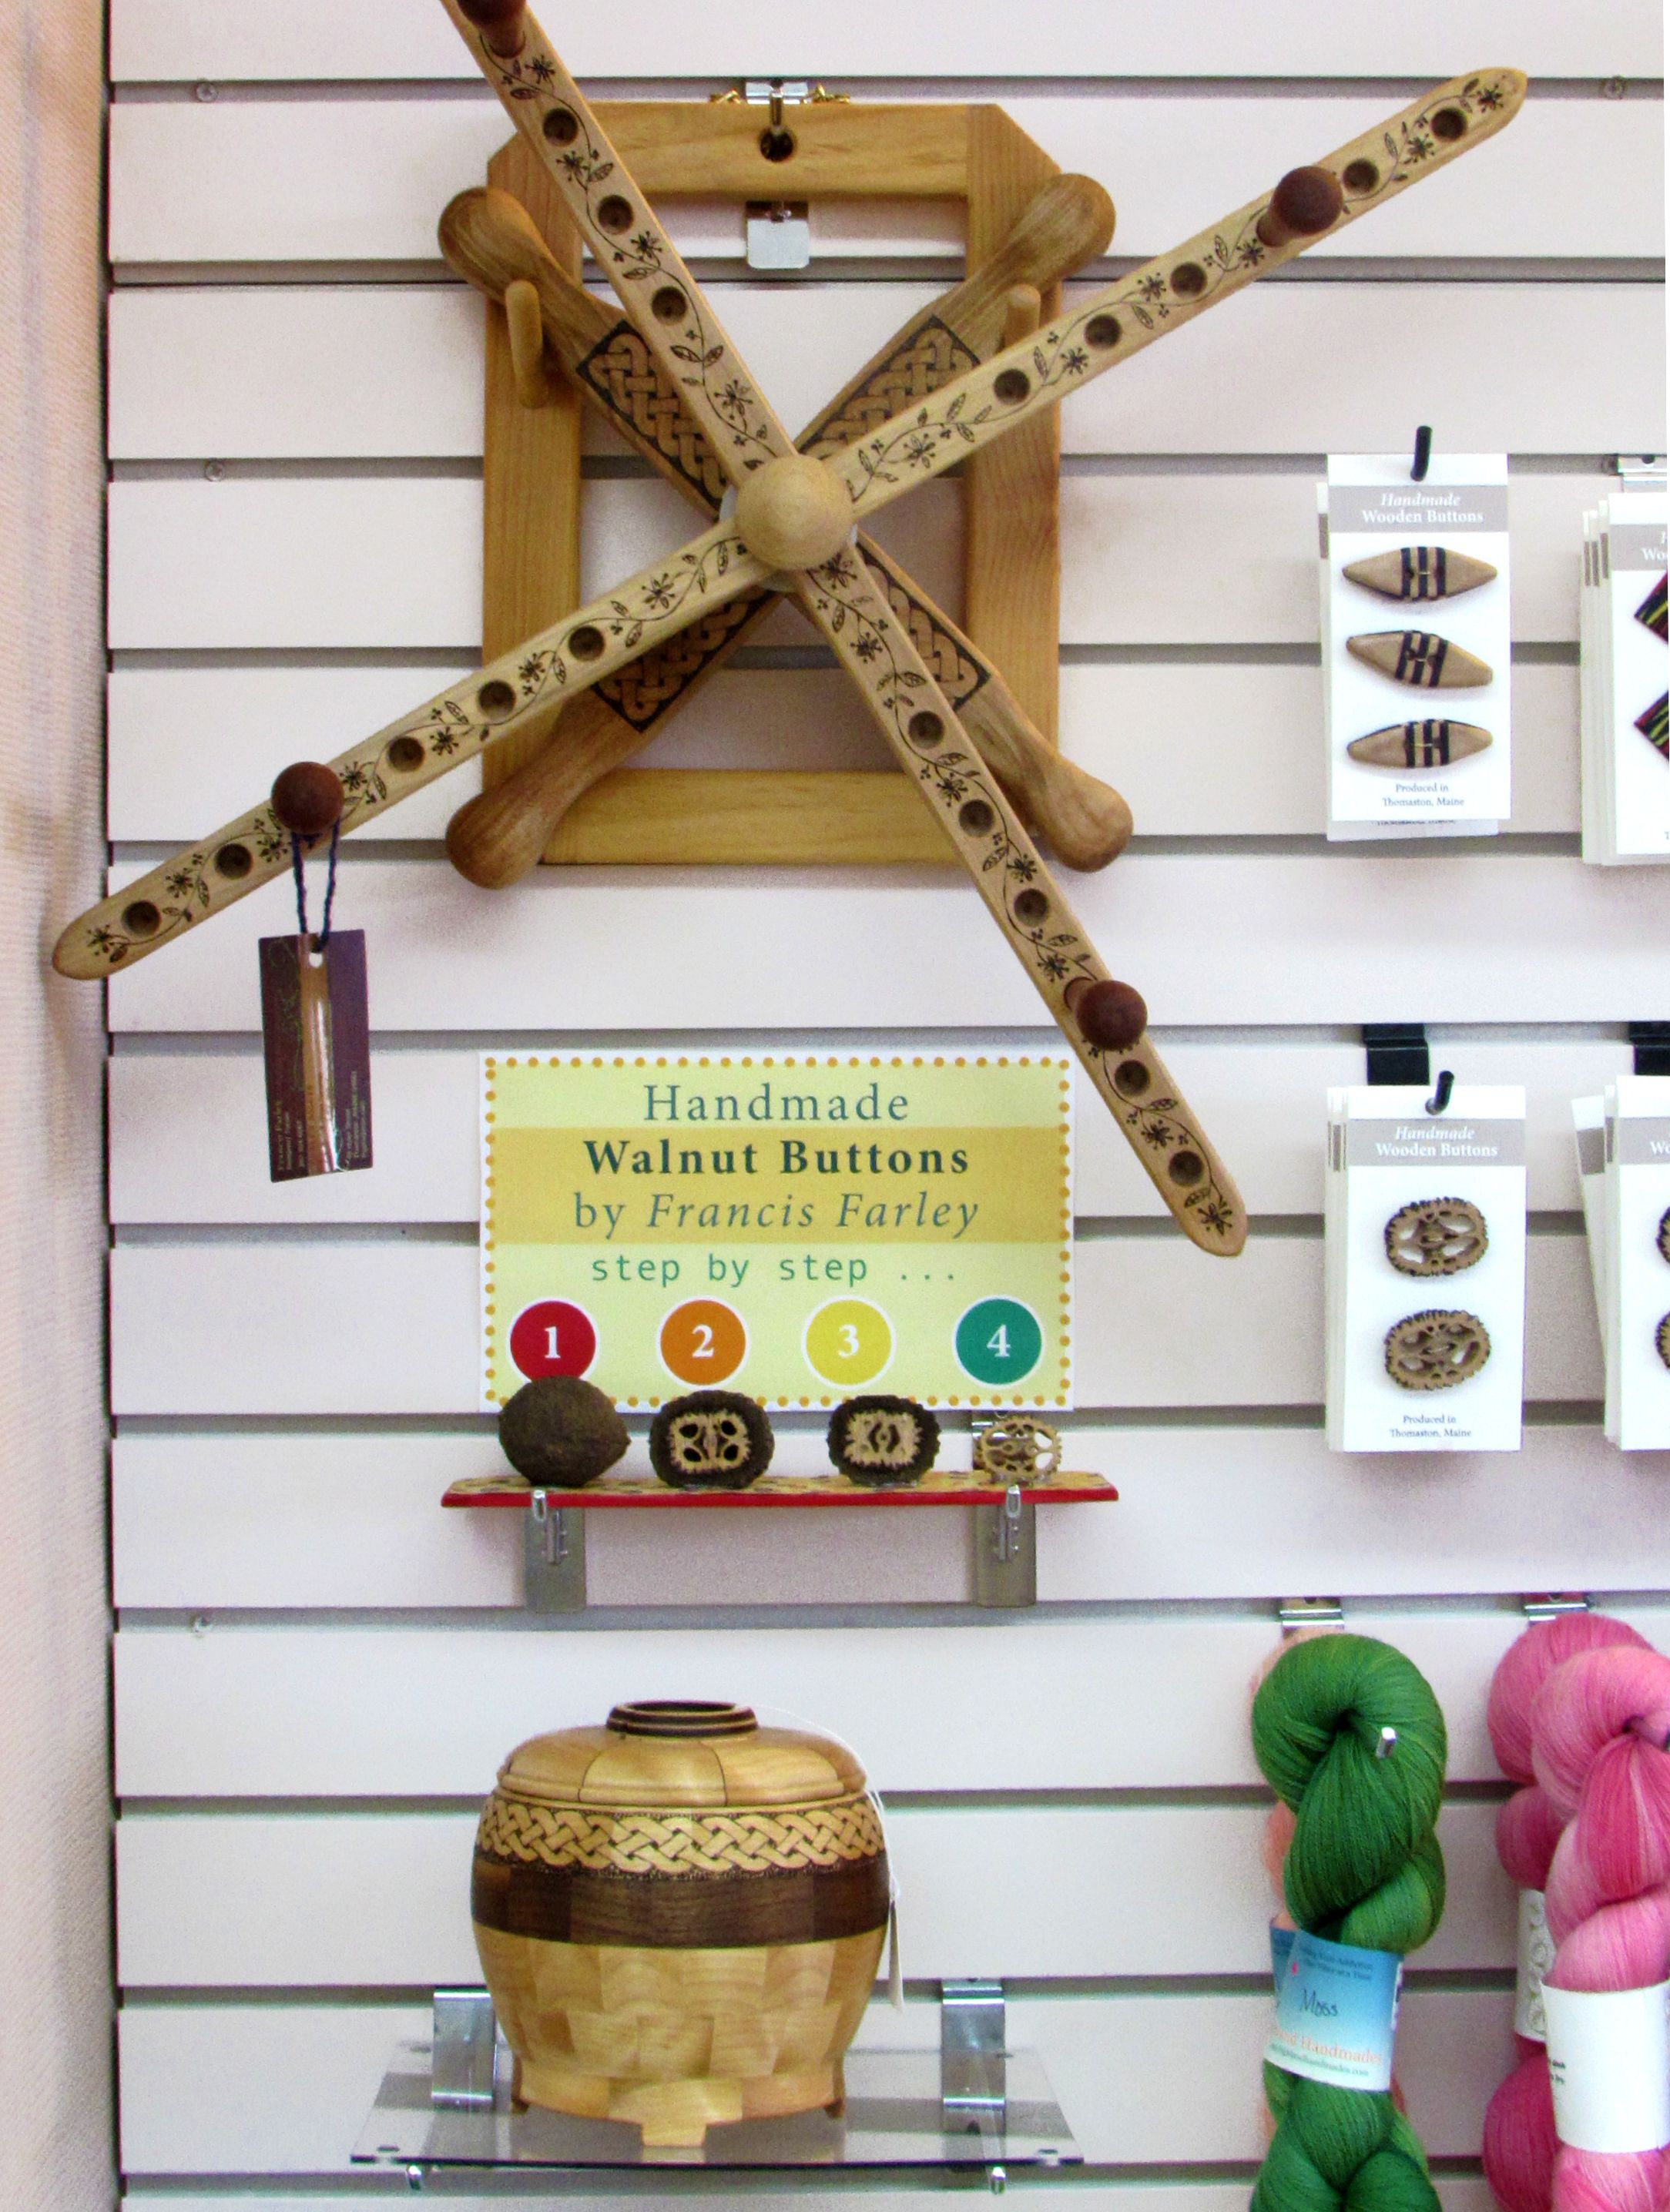 We sell hand-crafted swifts, yarn bowls and buttons by local woodworker Francis Farley.